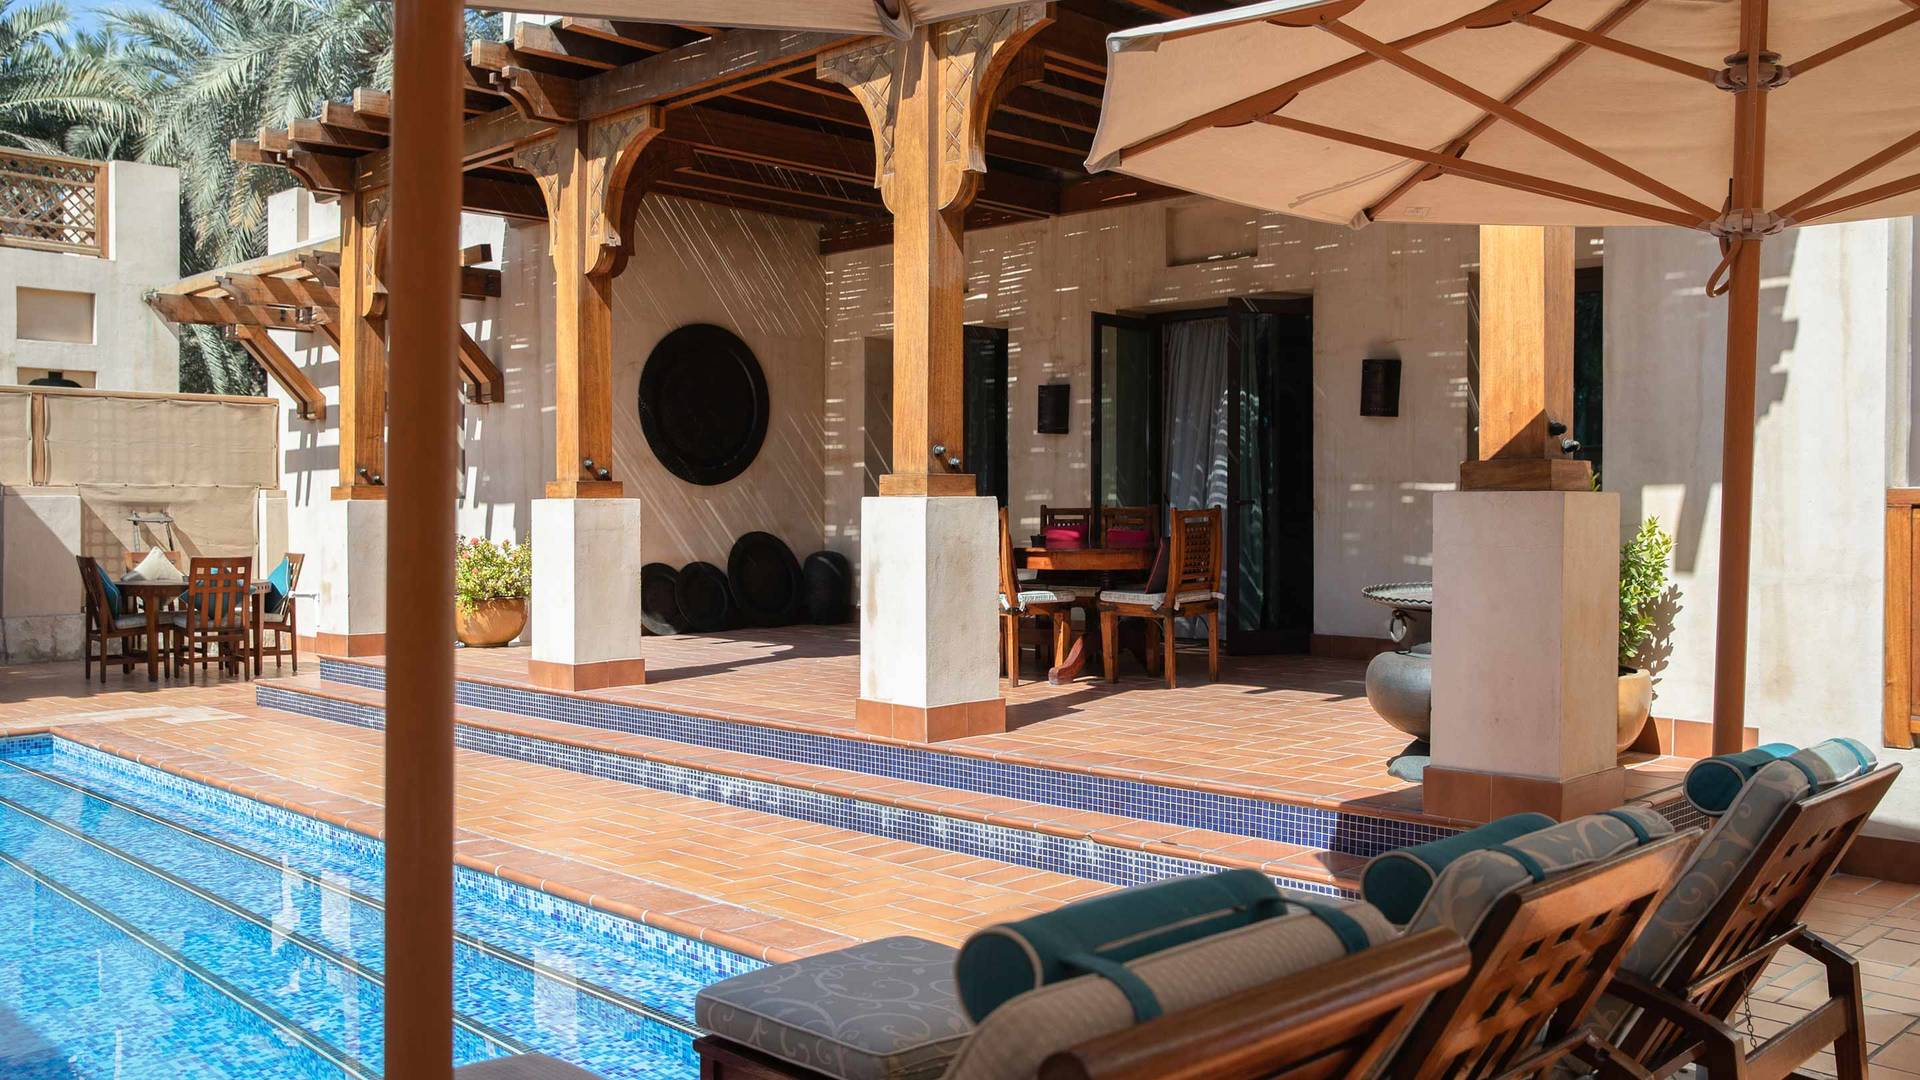 Jumeirah Dar Al Masayaf Three Bedroom Malakiya Villa pool and sun lounge area